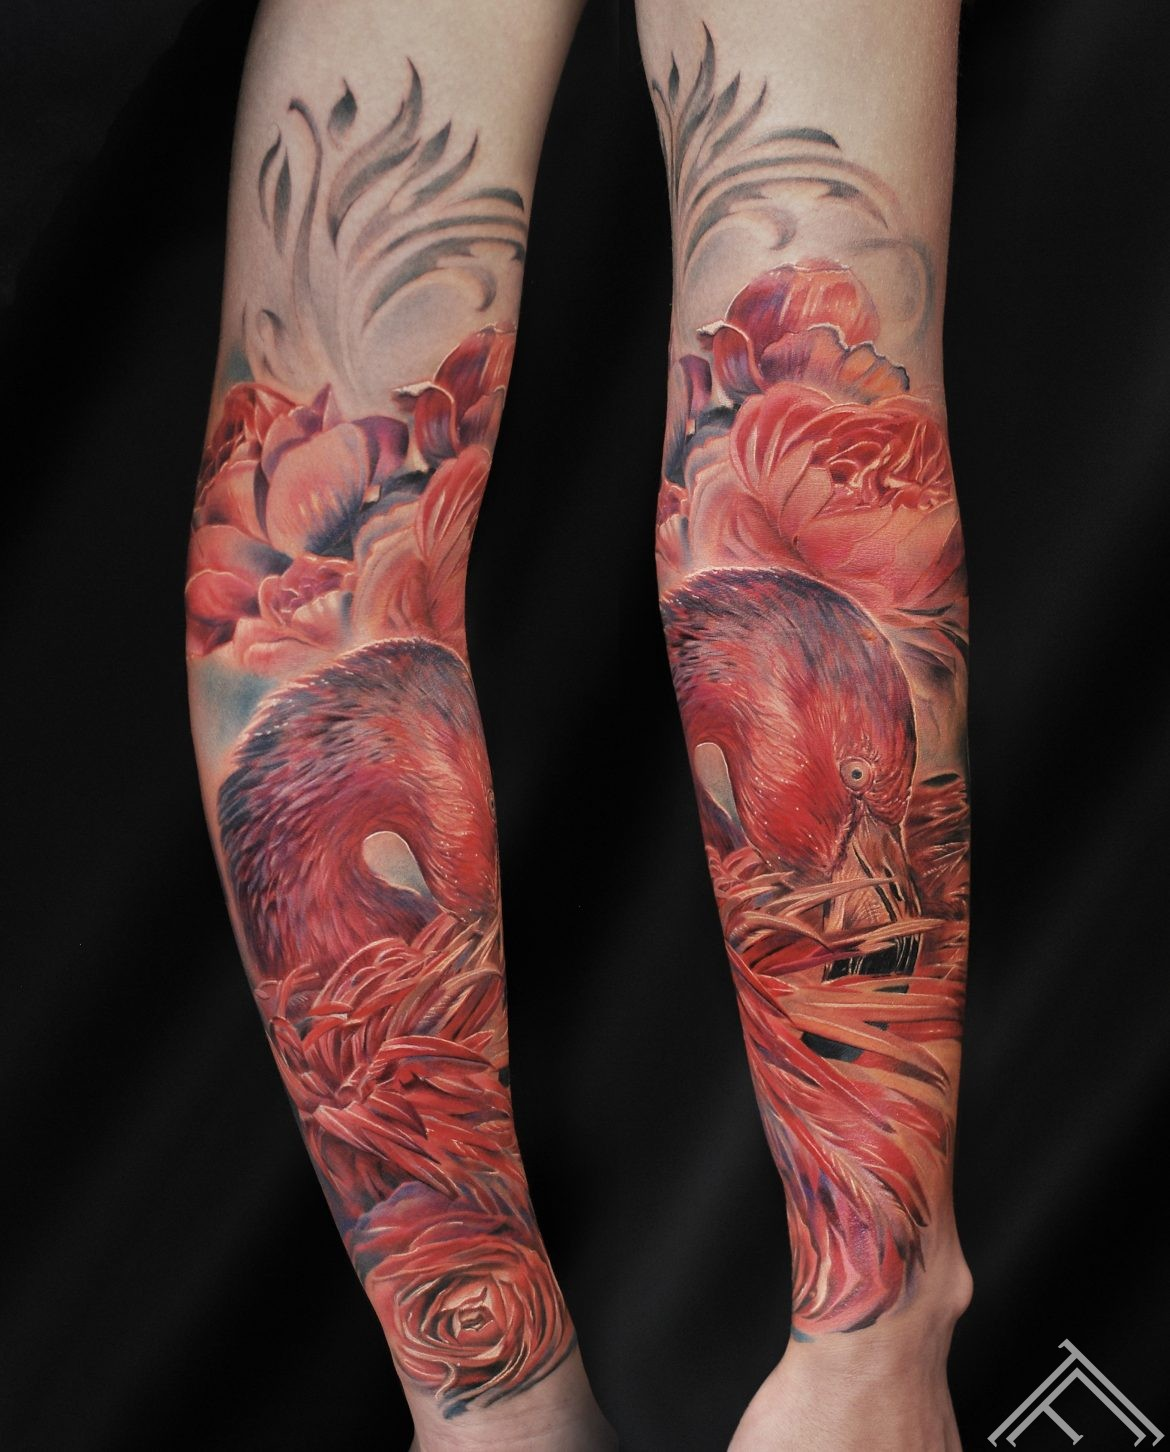 flamingo-bird-putns-roses-peony-ziedi-art-tattoo-tattoofrequency-riga-maksla